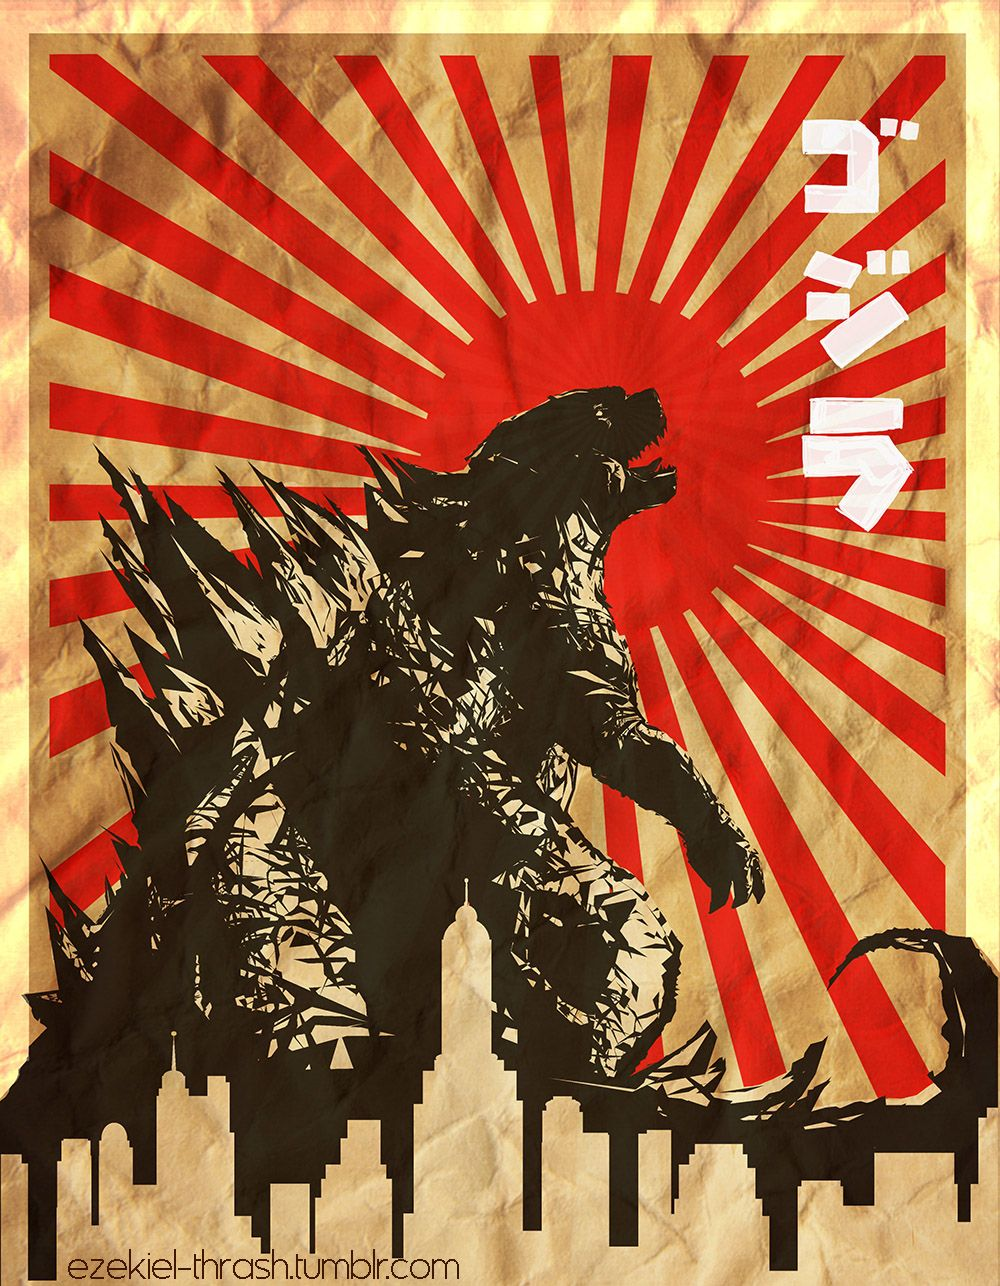 Vintage Godzilla Posters Google Search Vintage Posters Intro To Art Poster Art